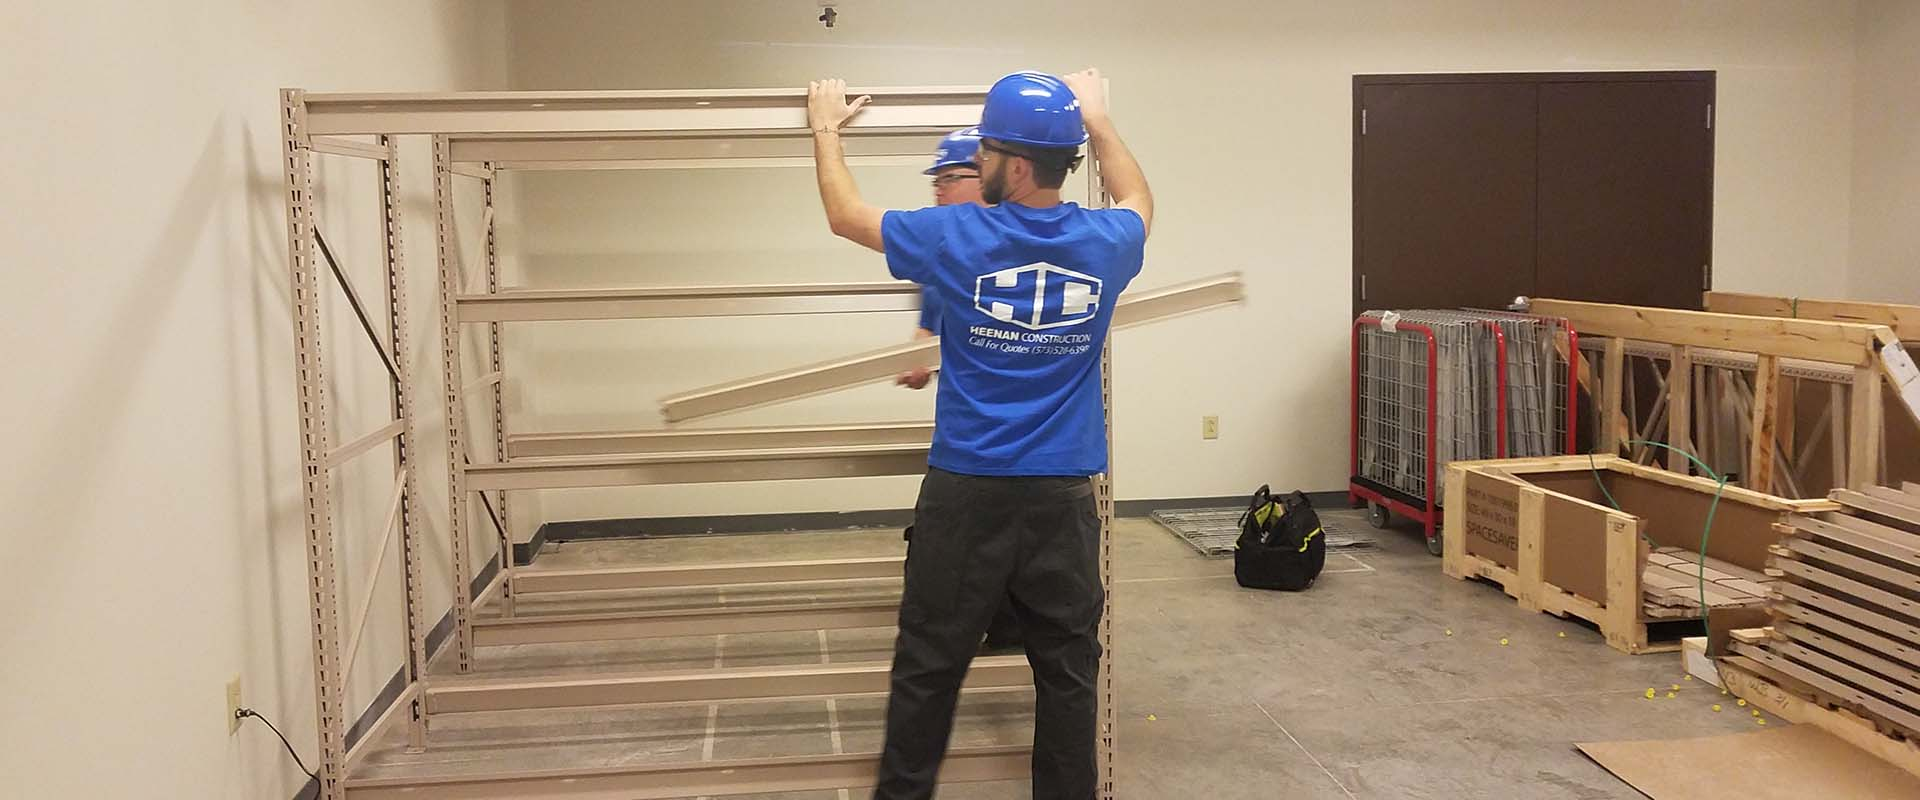 Heenan Construction, LLC Initial Outfitting, Design Build and Commercial Contracting